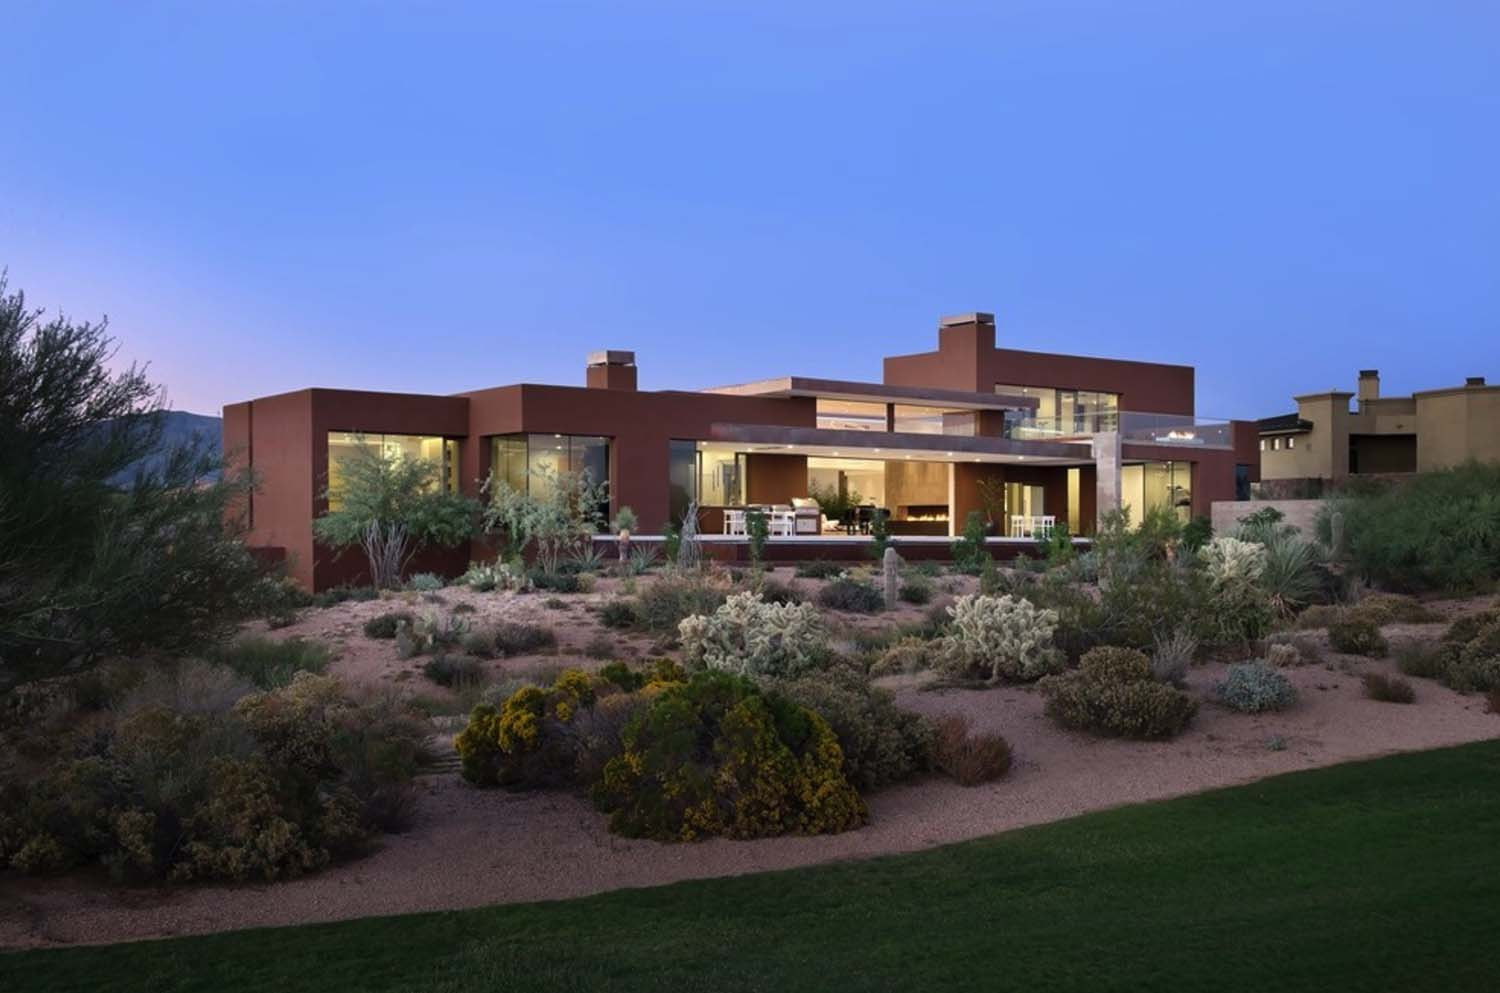 Contemporary Desert Home-Tate Studio Architects-02-1 Kindesign